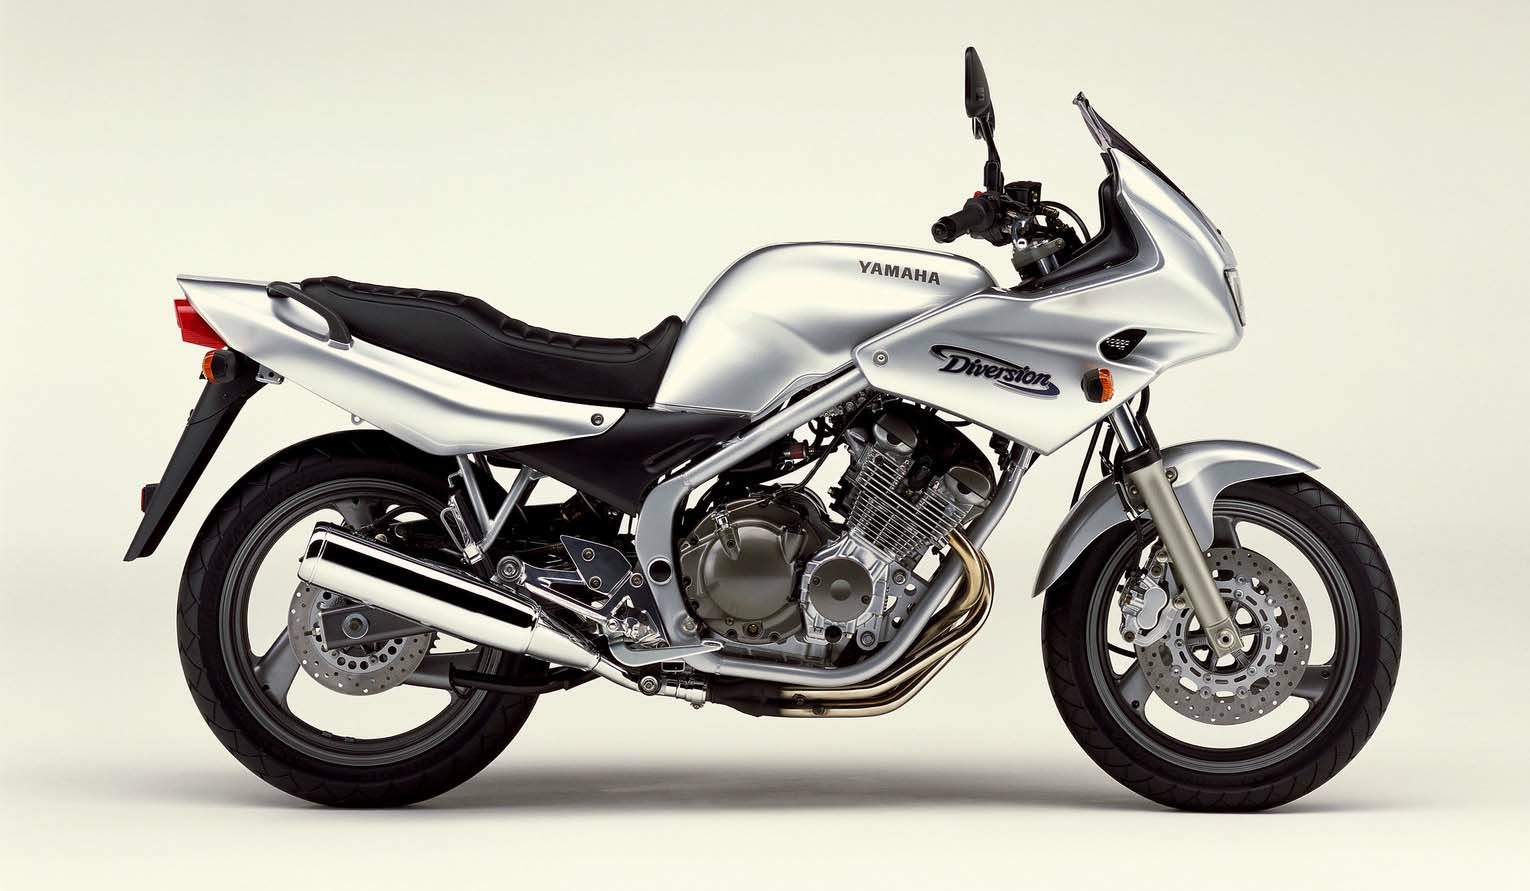 Мотоцикл Yamaha XJ 600S Diversion 2001